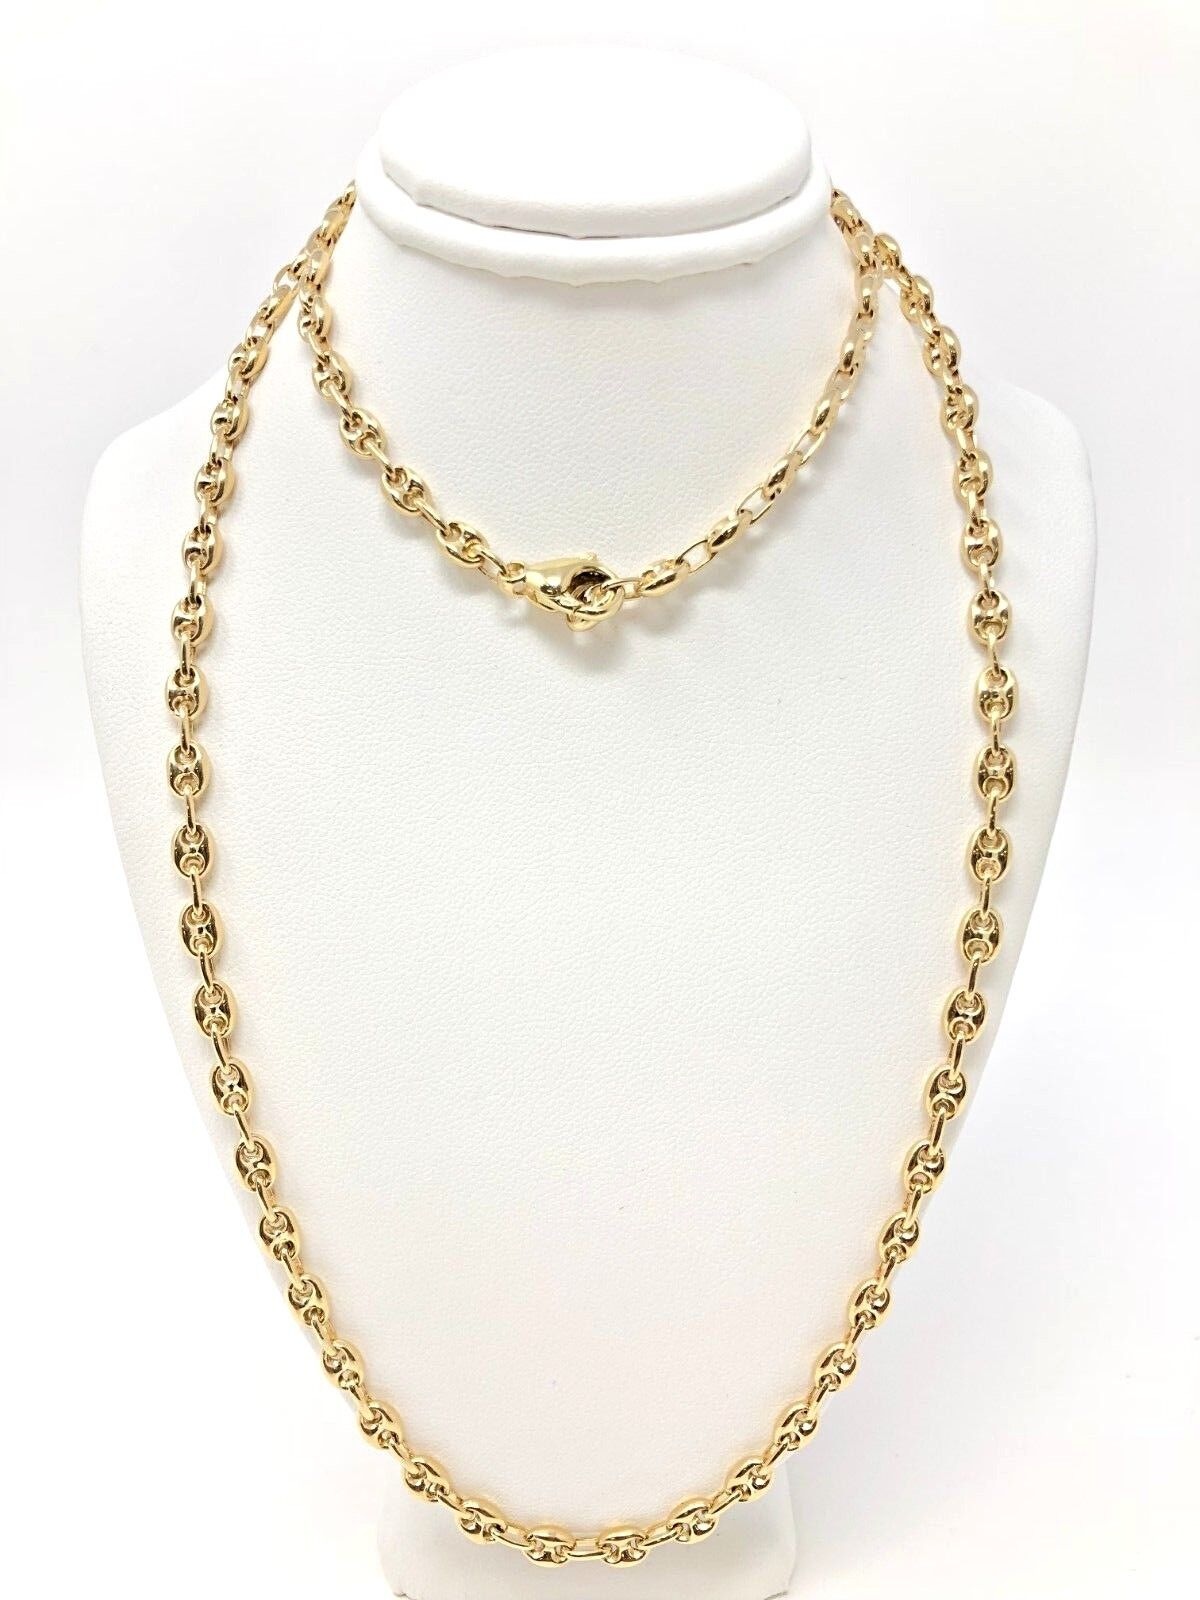 d2c760e15 14K Yellow Gold Solid Gucci Mariner Link Chain Necklace 26